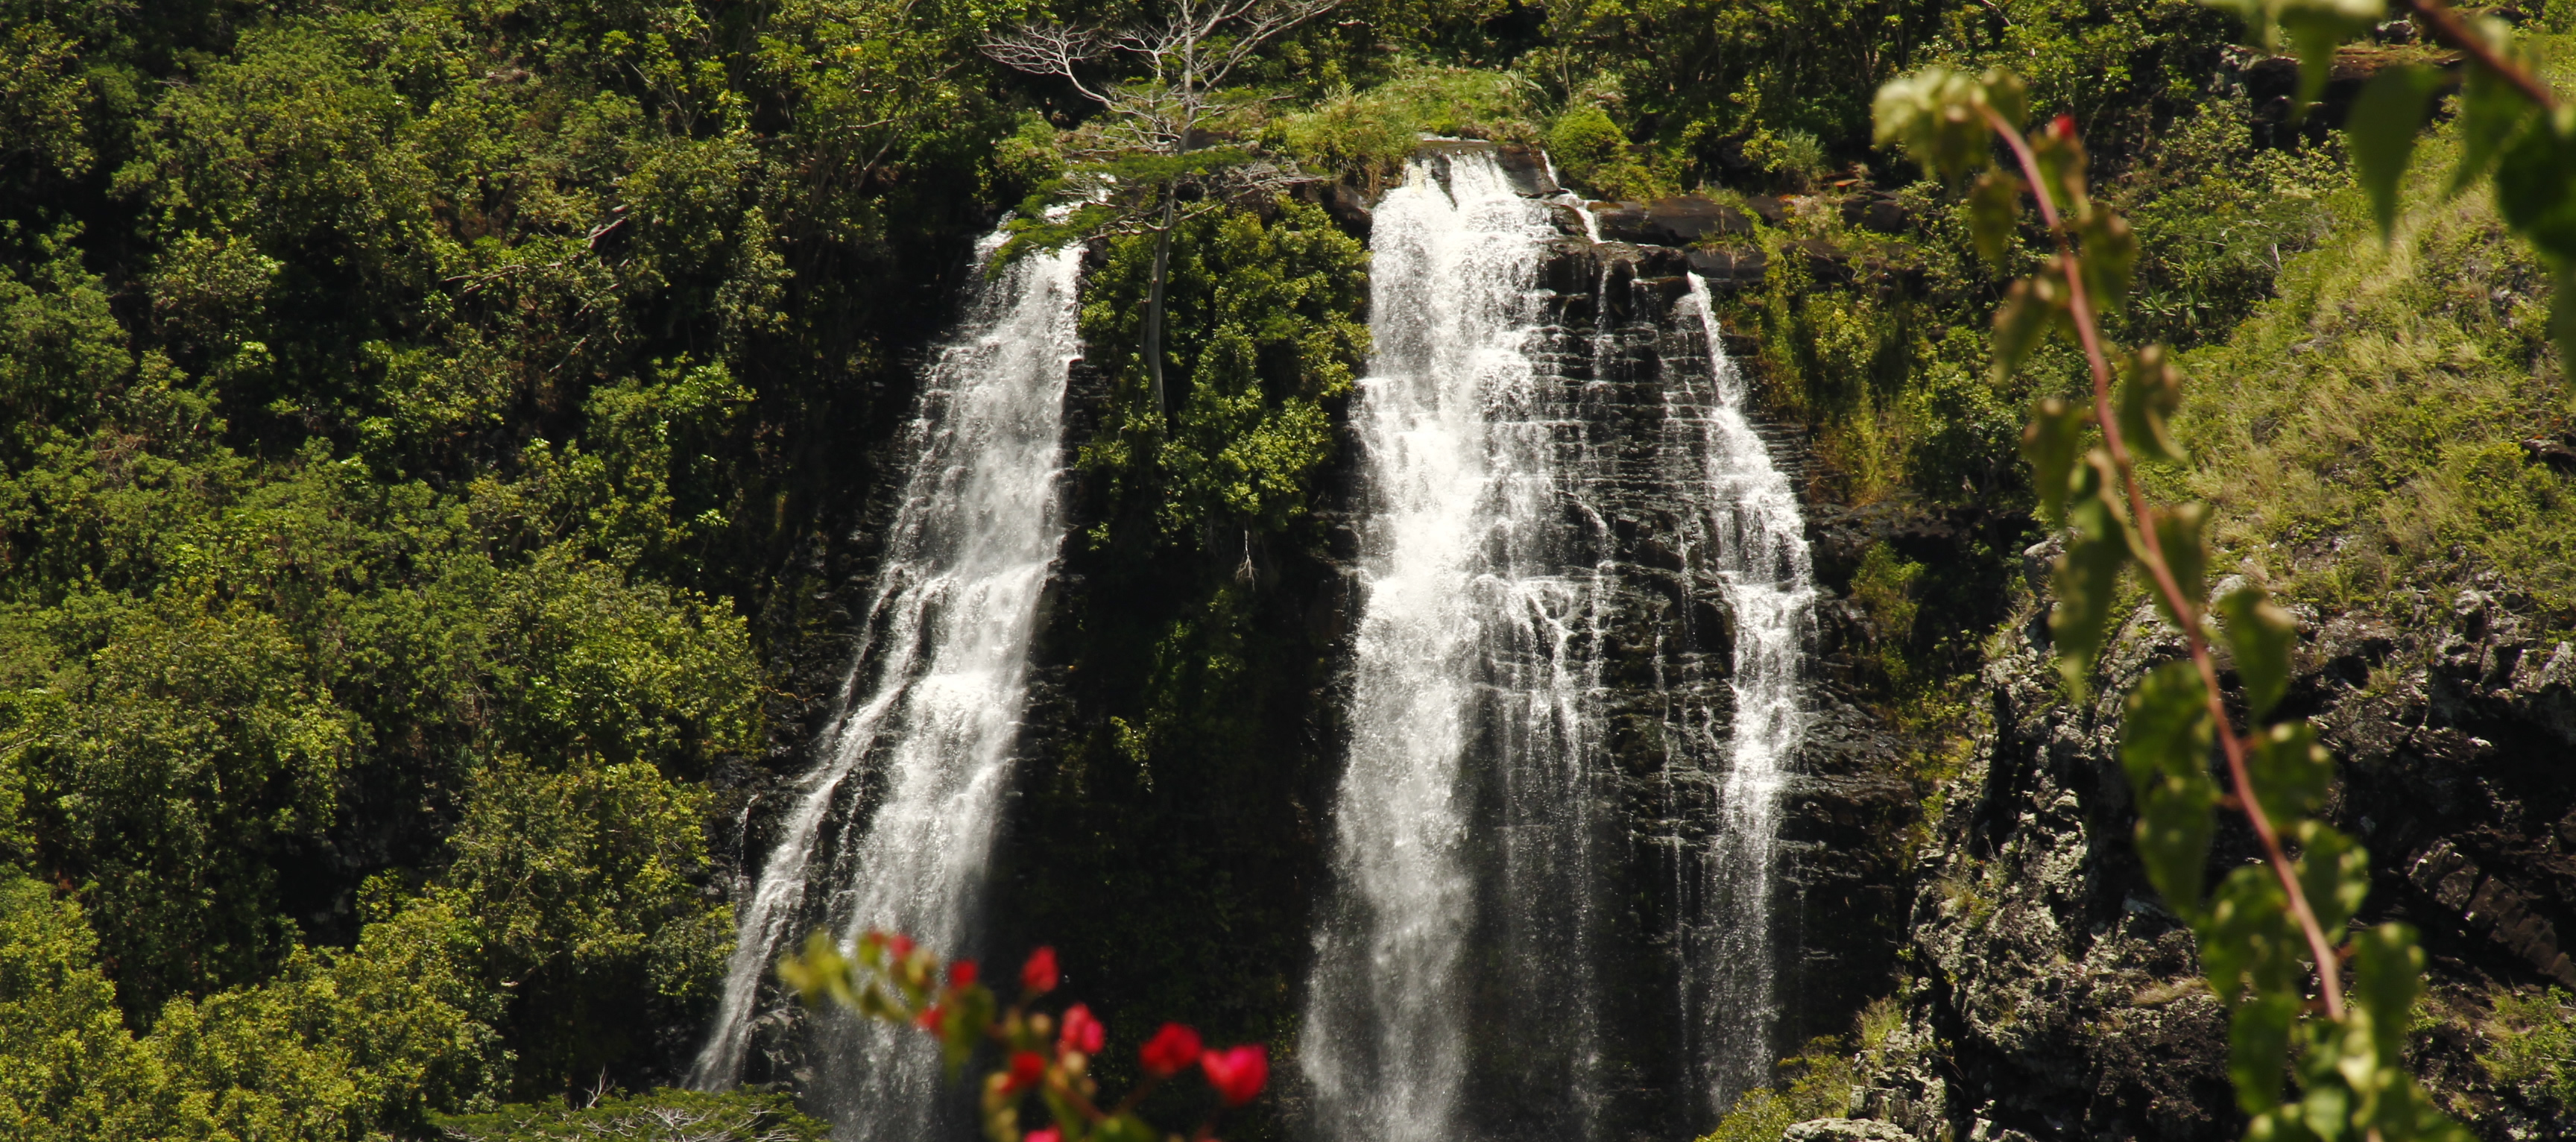 The 7 Best Easy To View Waterfalls In Kauai With Map